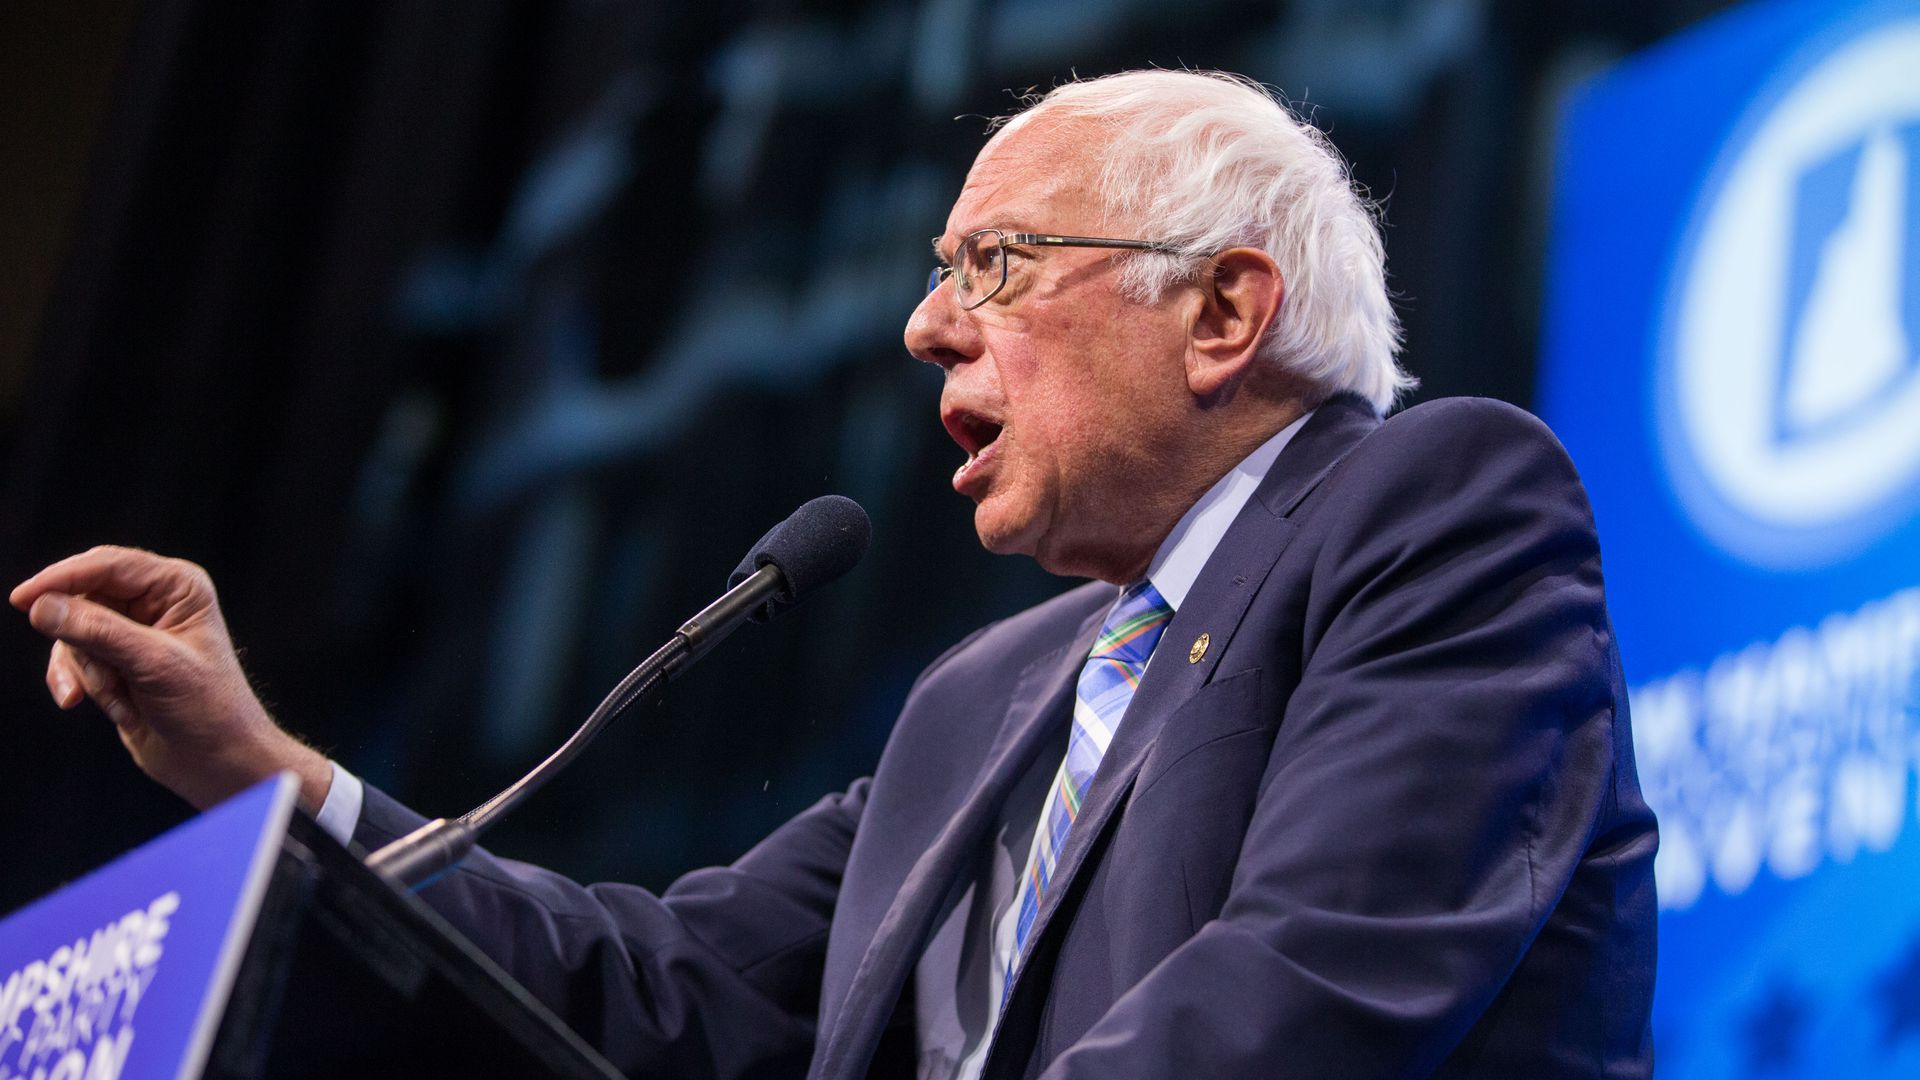 Bernie Sanders becomes first candidate to reach 1 million individual donors